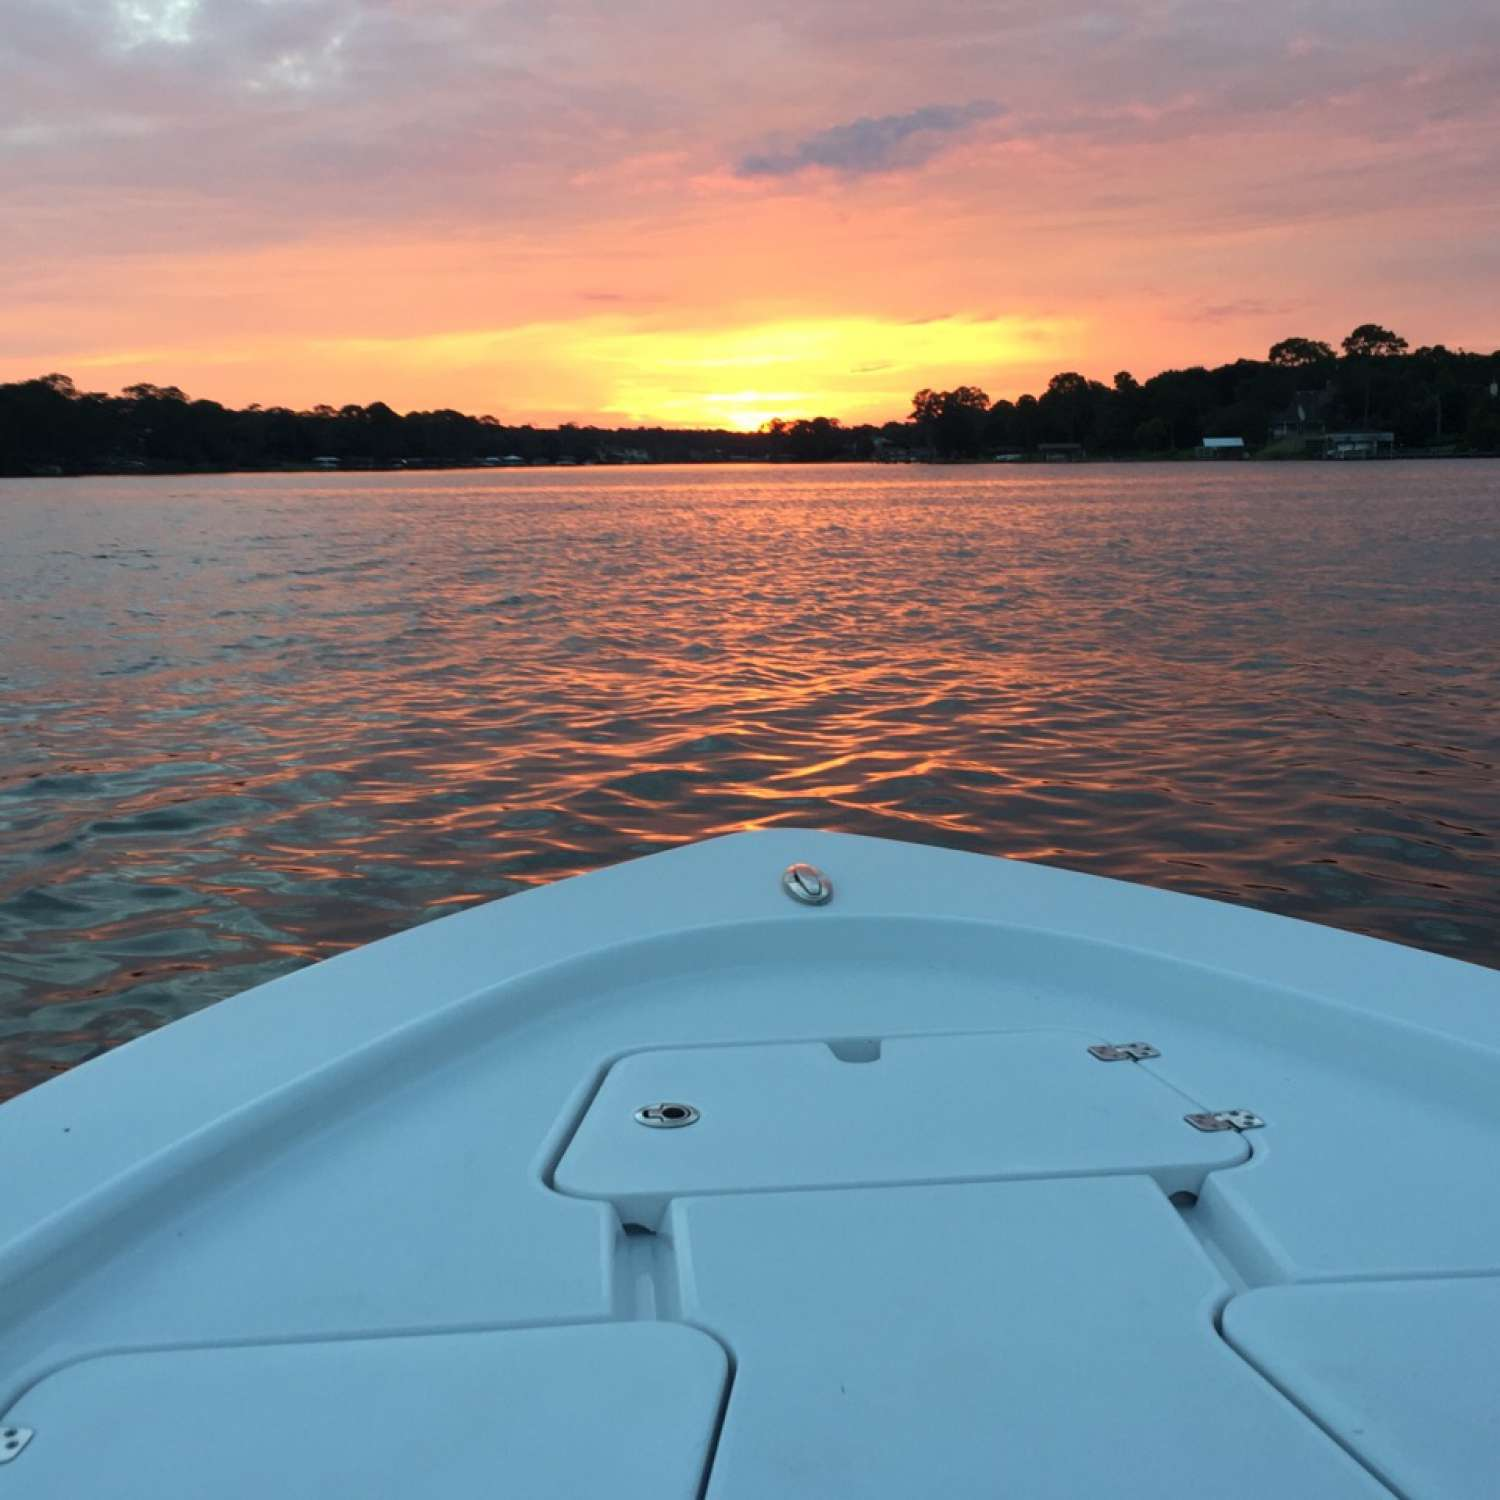 Title: Bayou Sunset - On board their Sportsman Masters 207 Bay Boat - Location: Pace, Florida. Participating in the Photo Contest #SportsmanJune2017